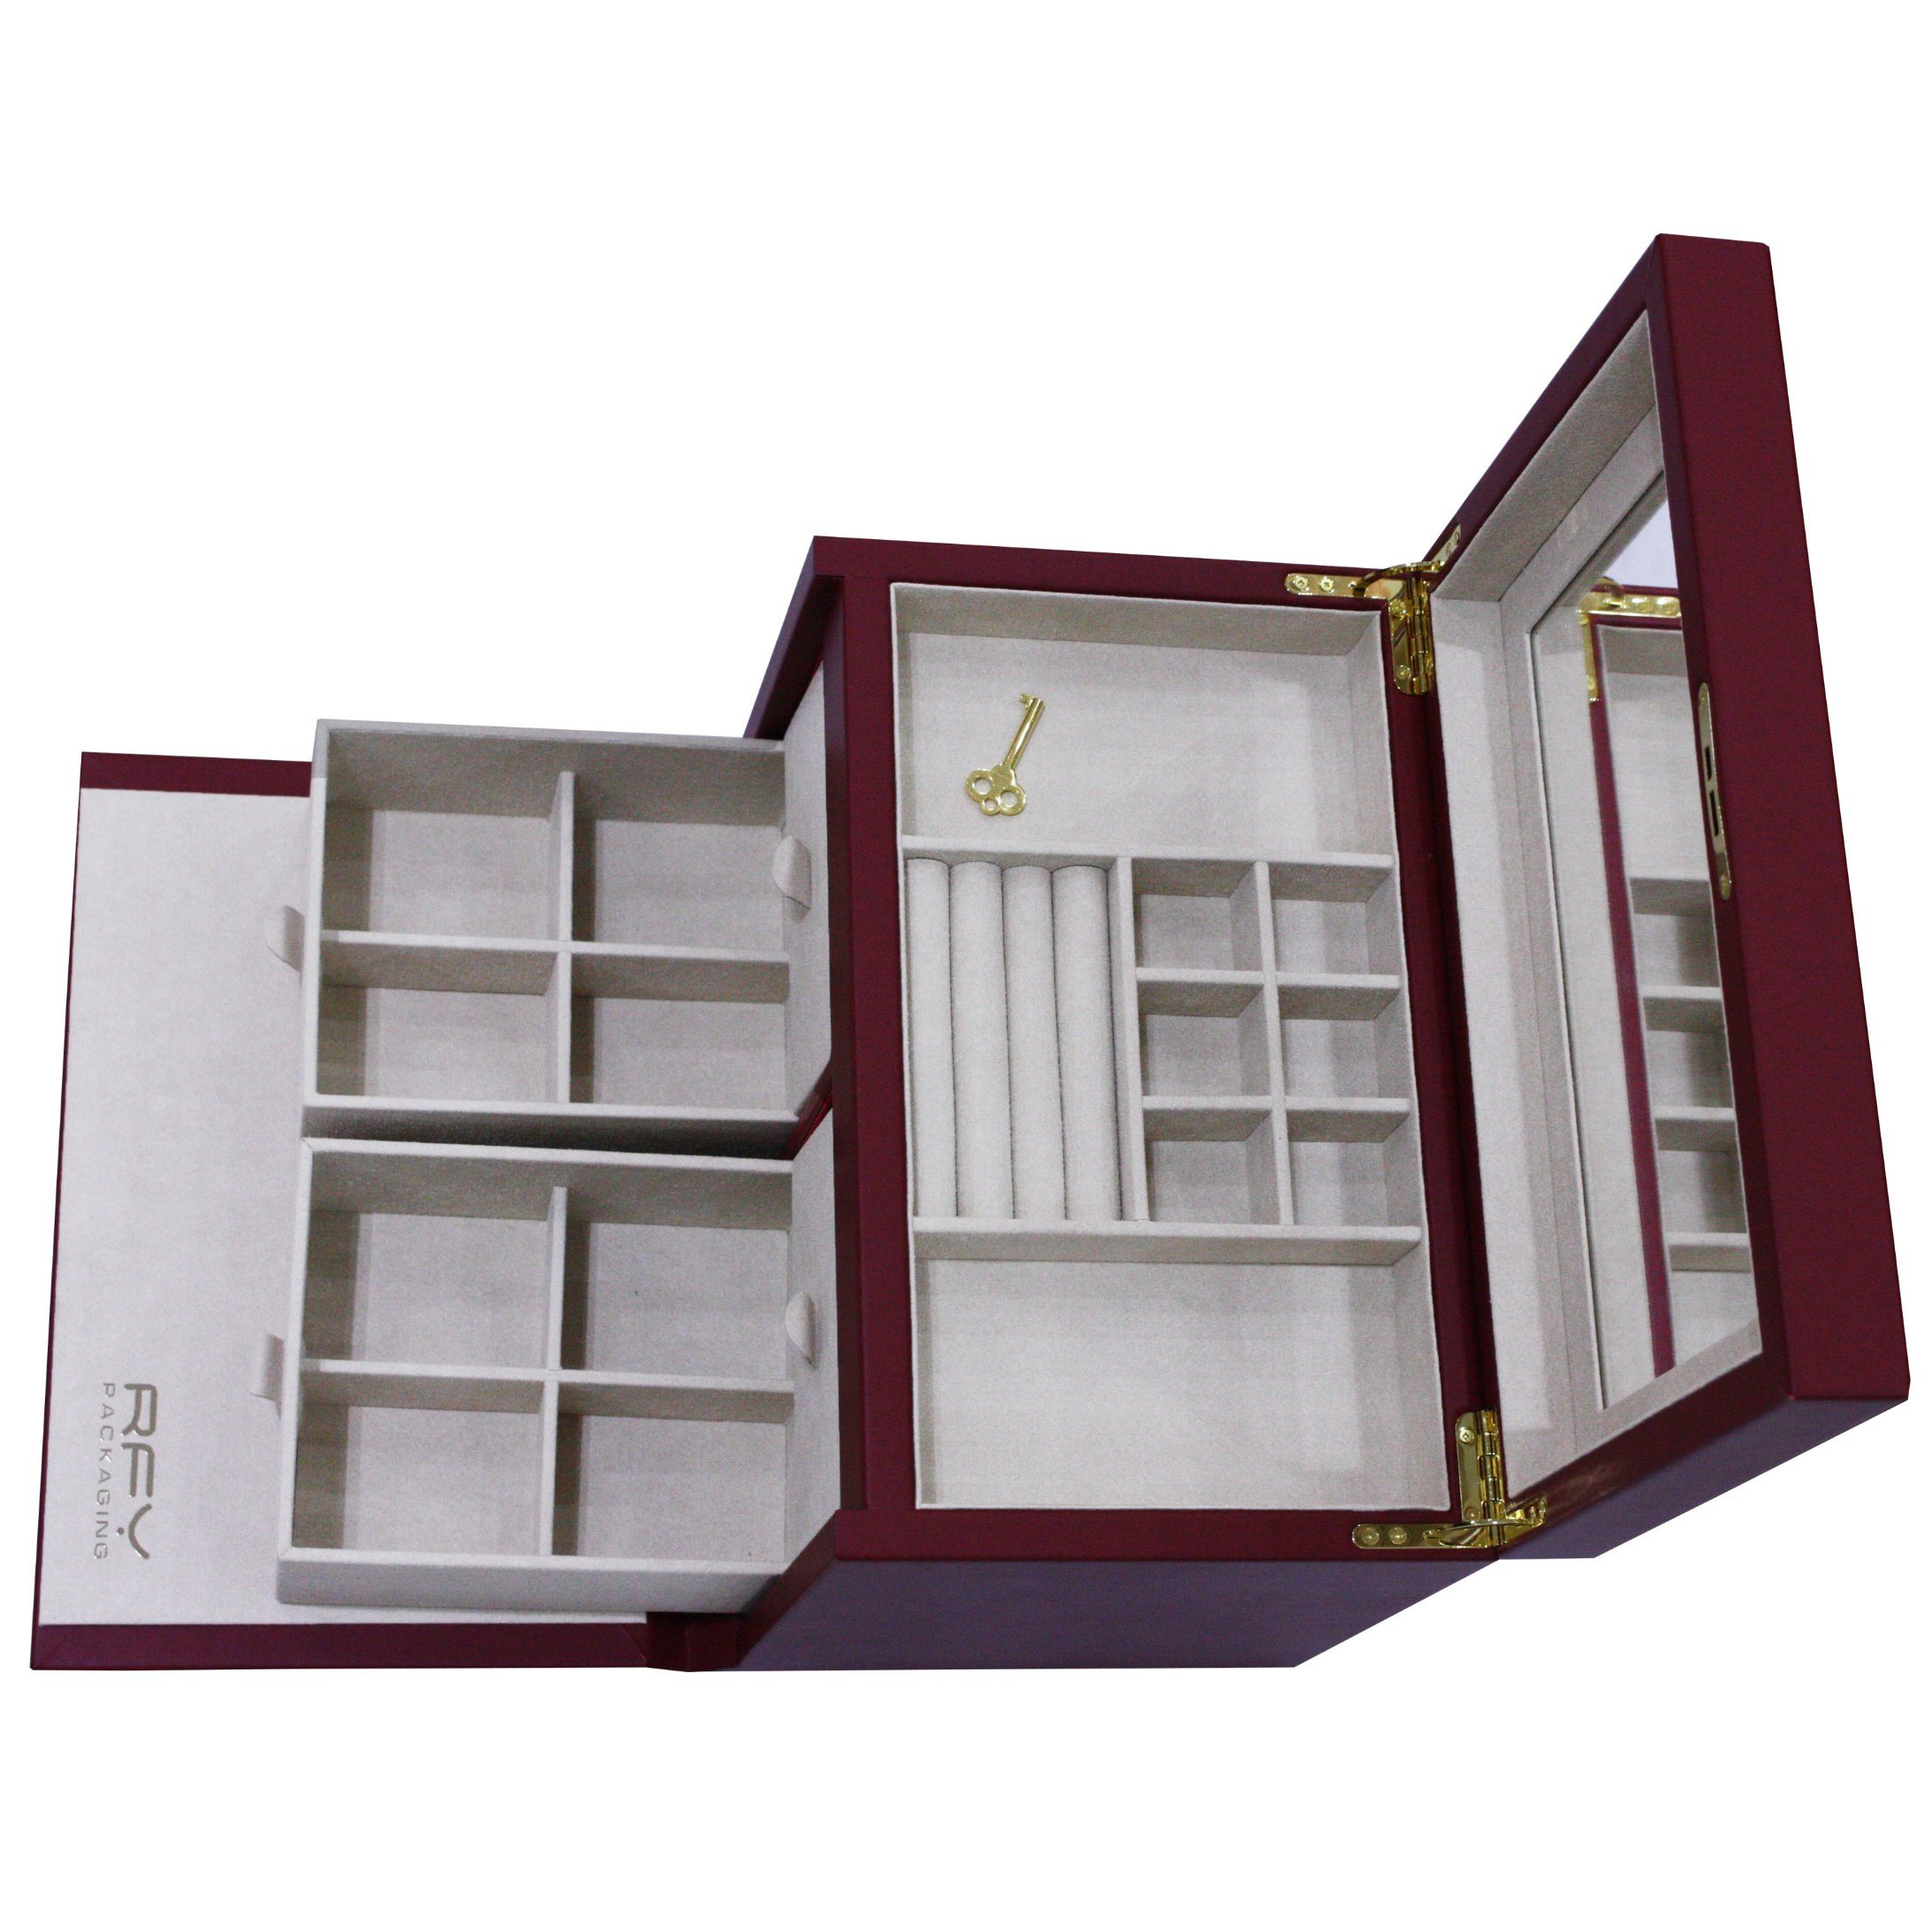 China High End Unique Wood Gift Box Sliding Wooden Boxes For Watch Jewelry Perfume Photos Pictures Made In China Com